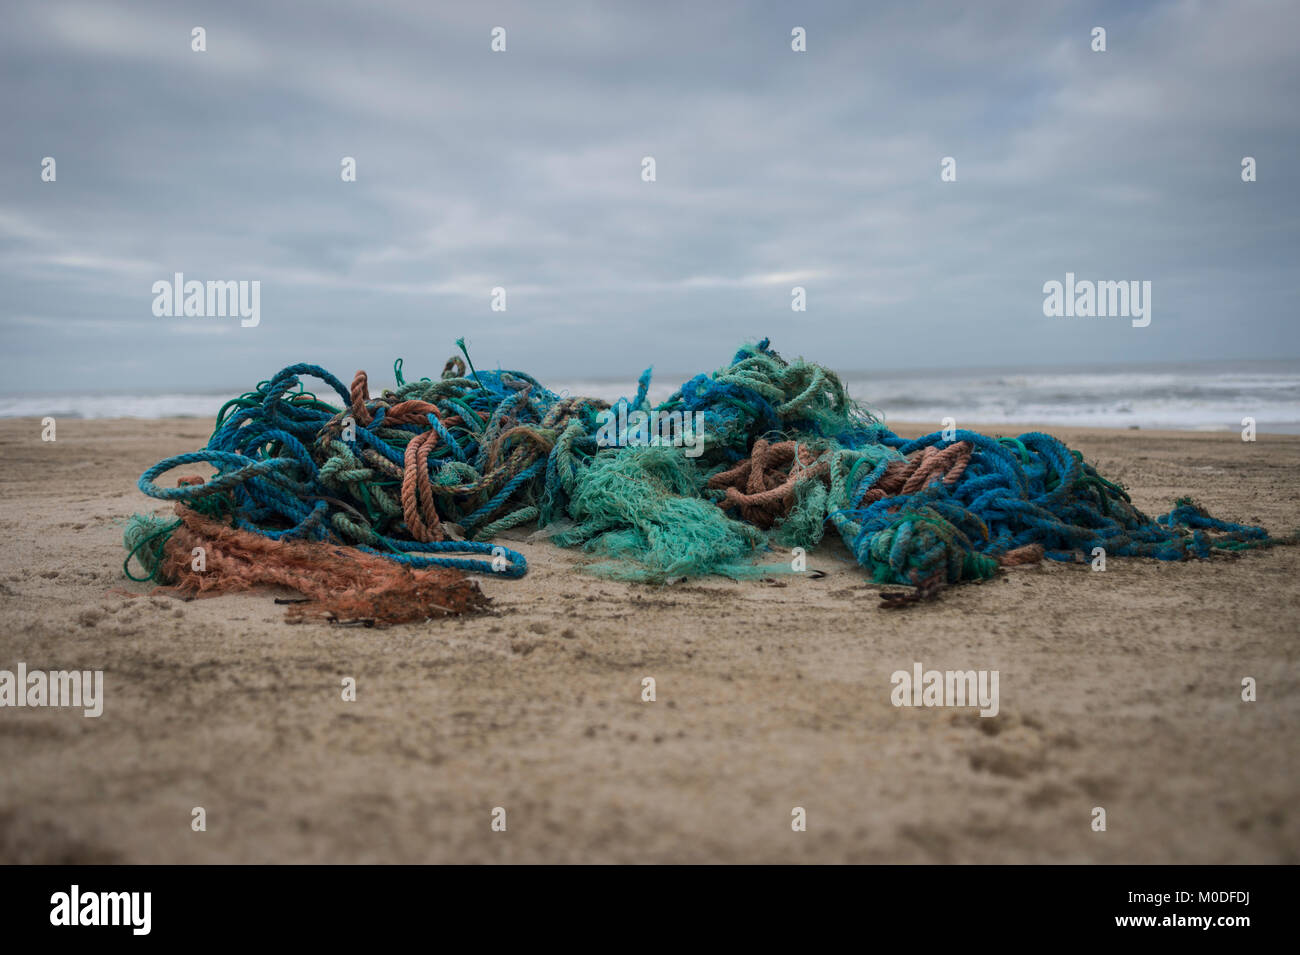 A tangle of synthetic plastic fishing ropes washed up on the beach. Environmental damage. - Stock Image